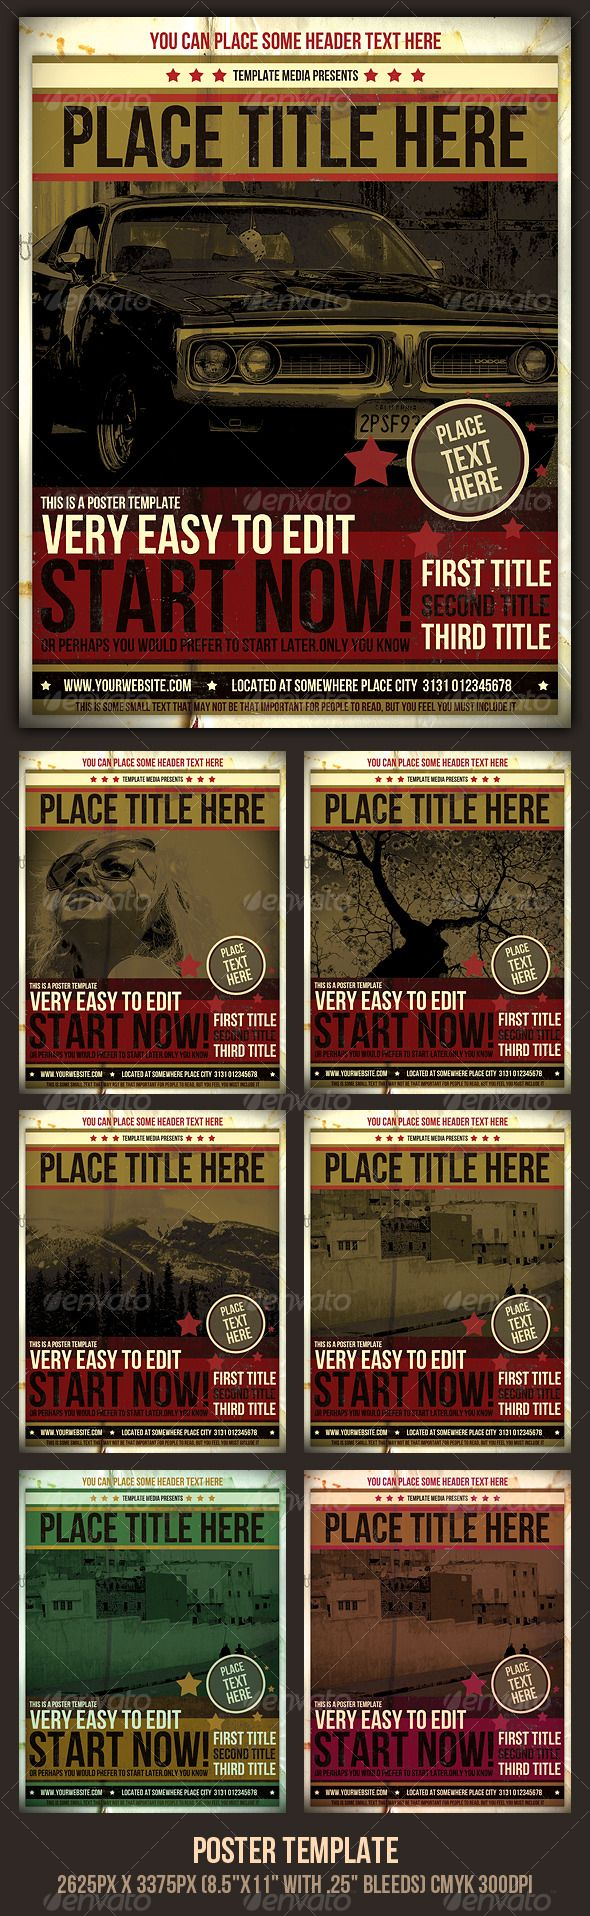 Poster Template -------------------- http://graphicriver.net/item/poster-template/128948?WT.ac=category_thumb_1=category_thumb_author=sevenstyles=25EGY